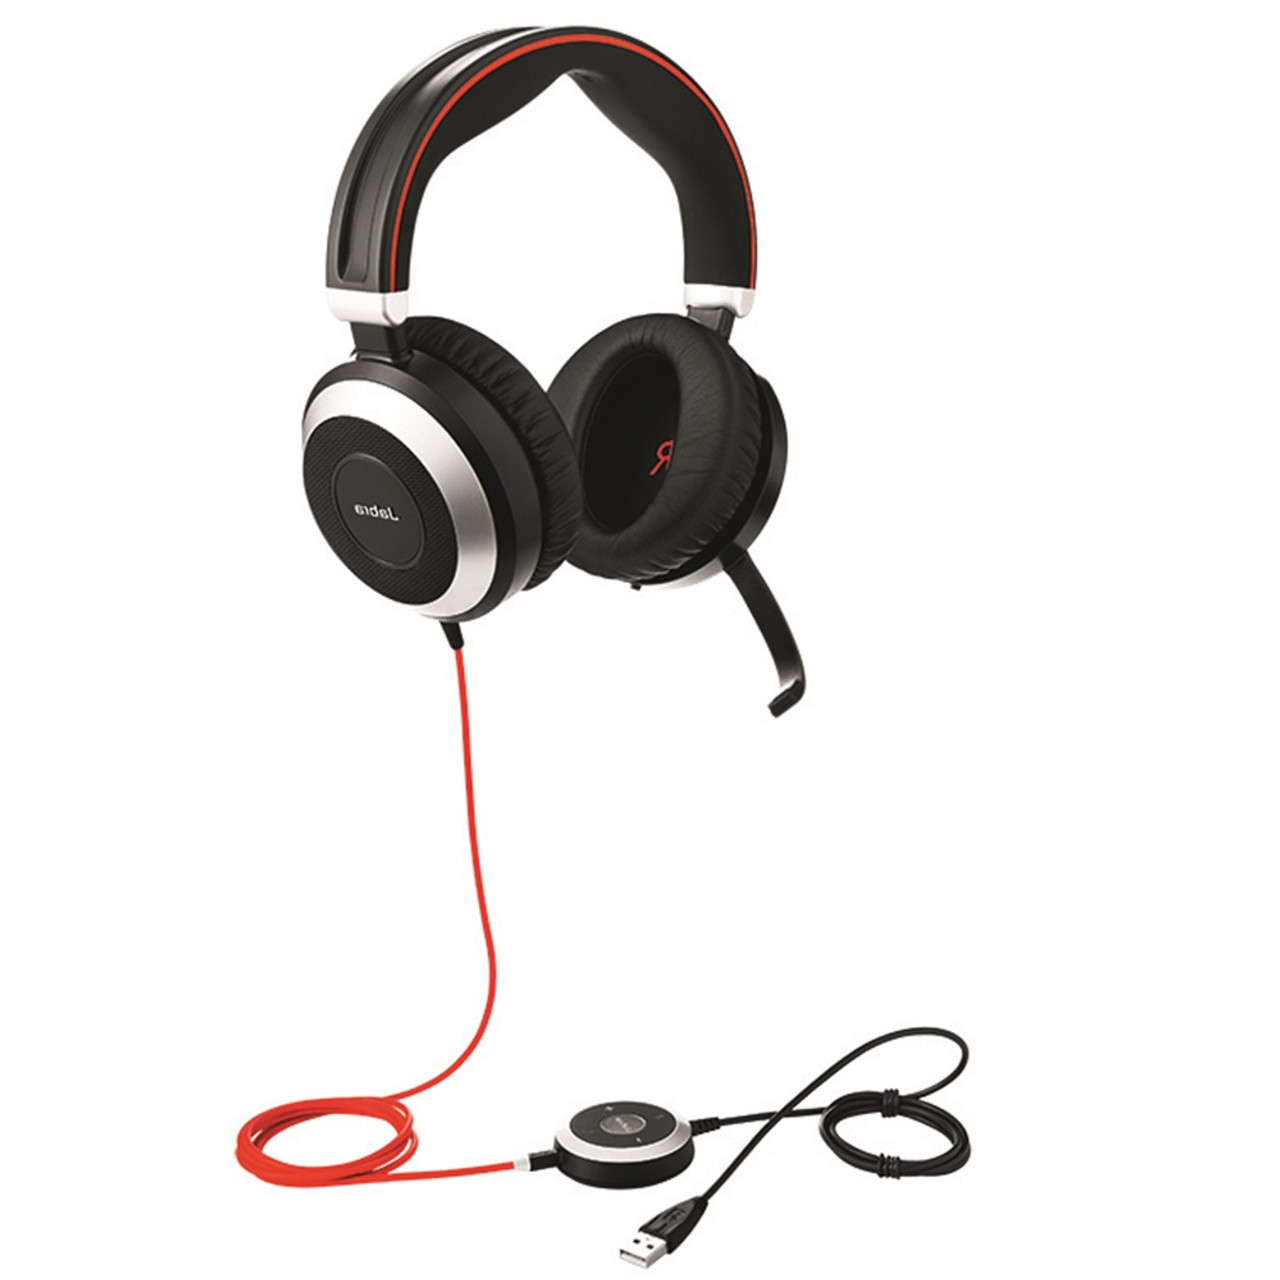 Jabra Evolve 80 Uc Stereo Usb Headset W Active Environmental Noise Canceling Certified For Skype For Business Voip Softphones Mobile Phones And Tablets 7899 829 209